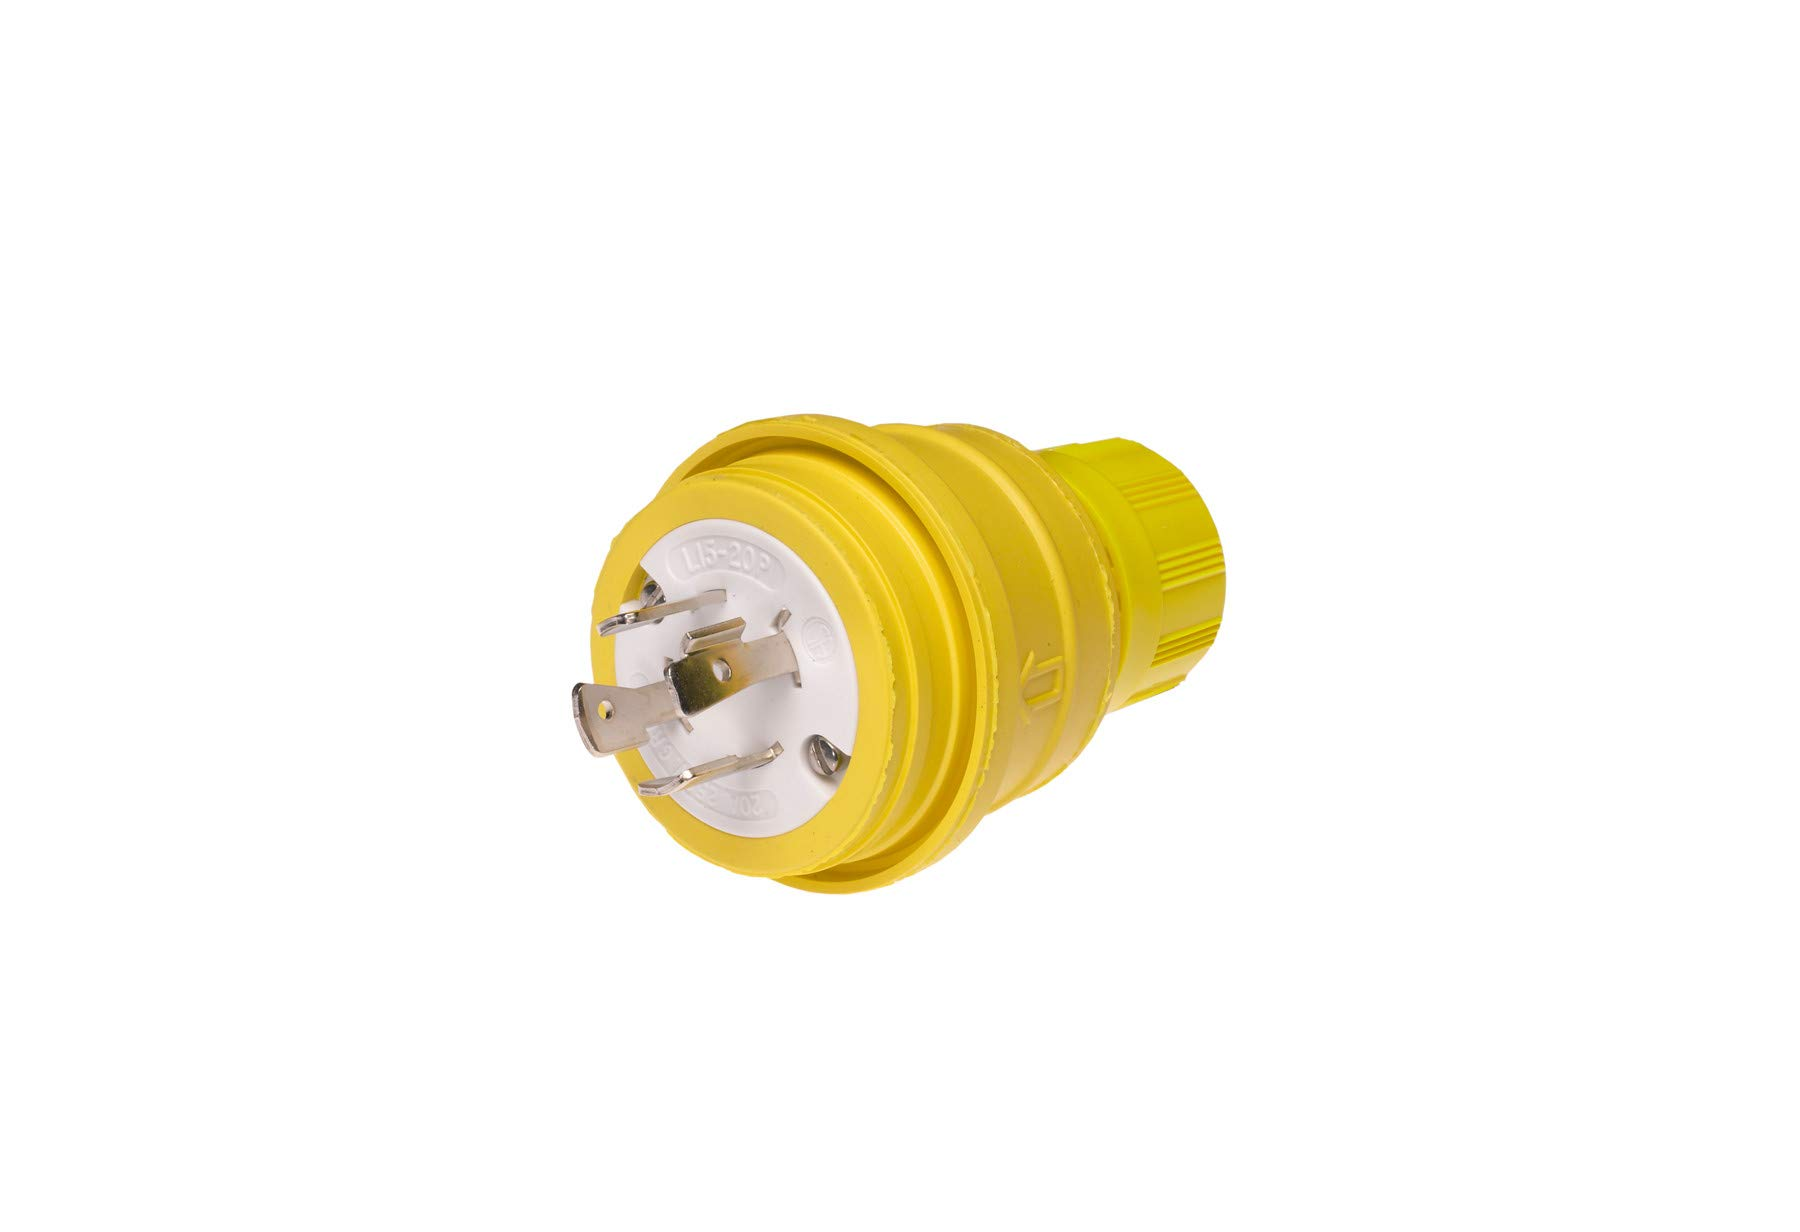 Woodhead 26W75 Watertite Wet Location Plug - 3Pole/4Wire Multiple Seal Plug Interface with NEMA L15-20 Configuration. Electrical Wiring Accessories